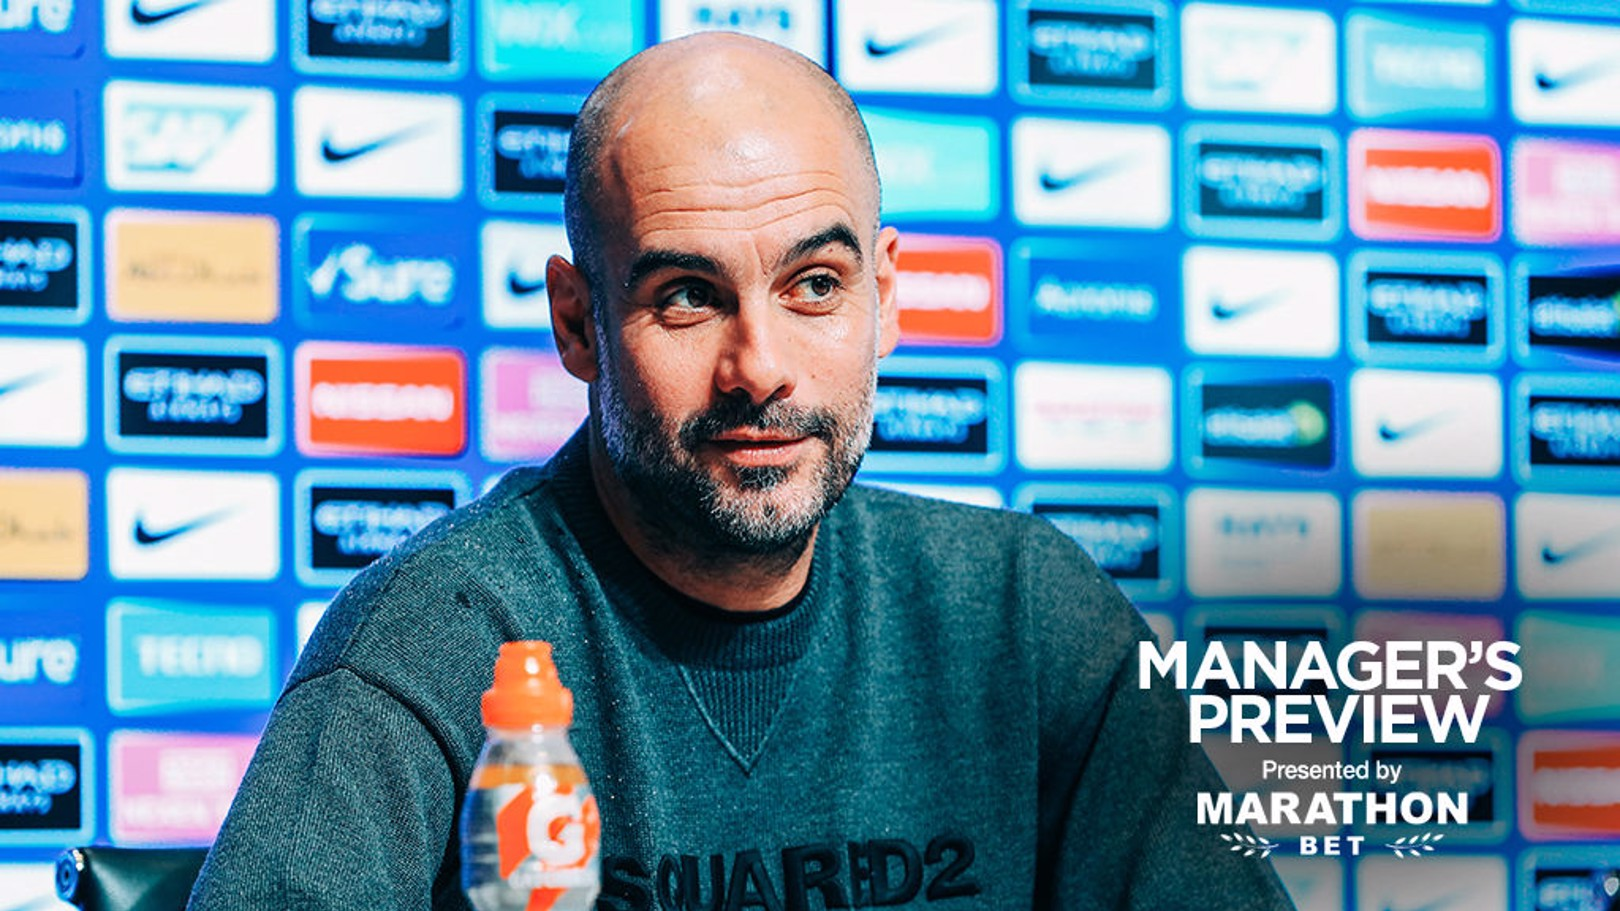 PEP GUARDIOLA. Último escalón antes de regresar a Wembley.